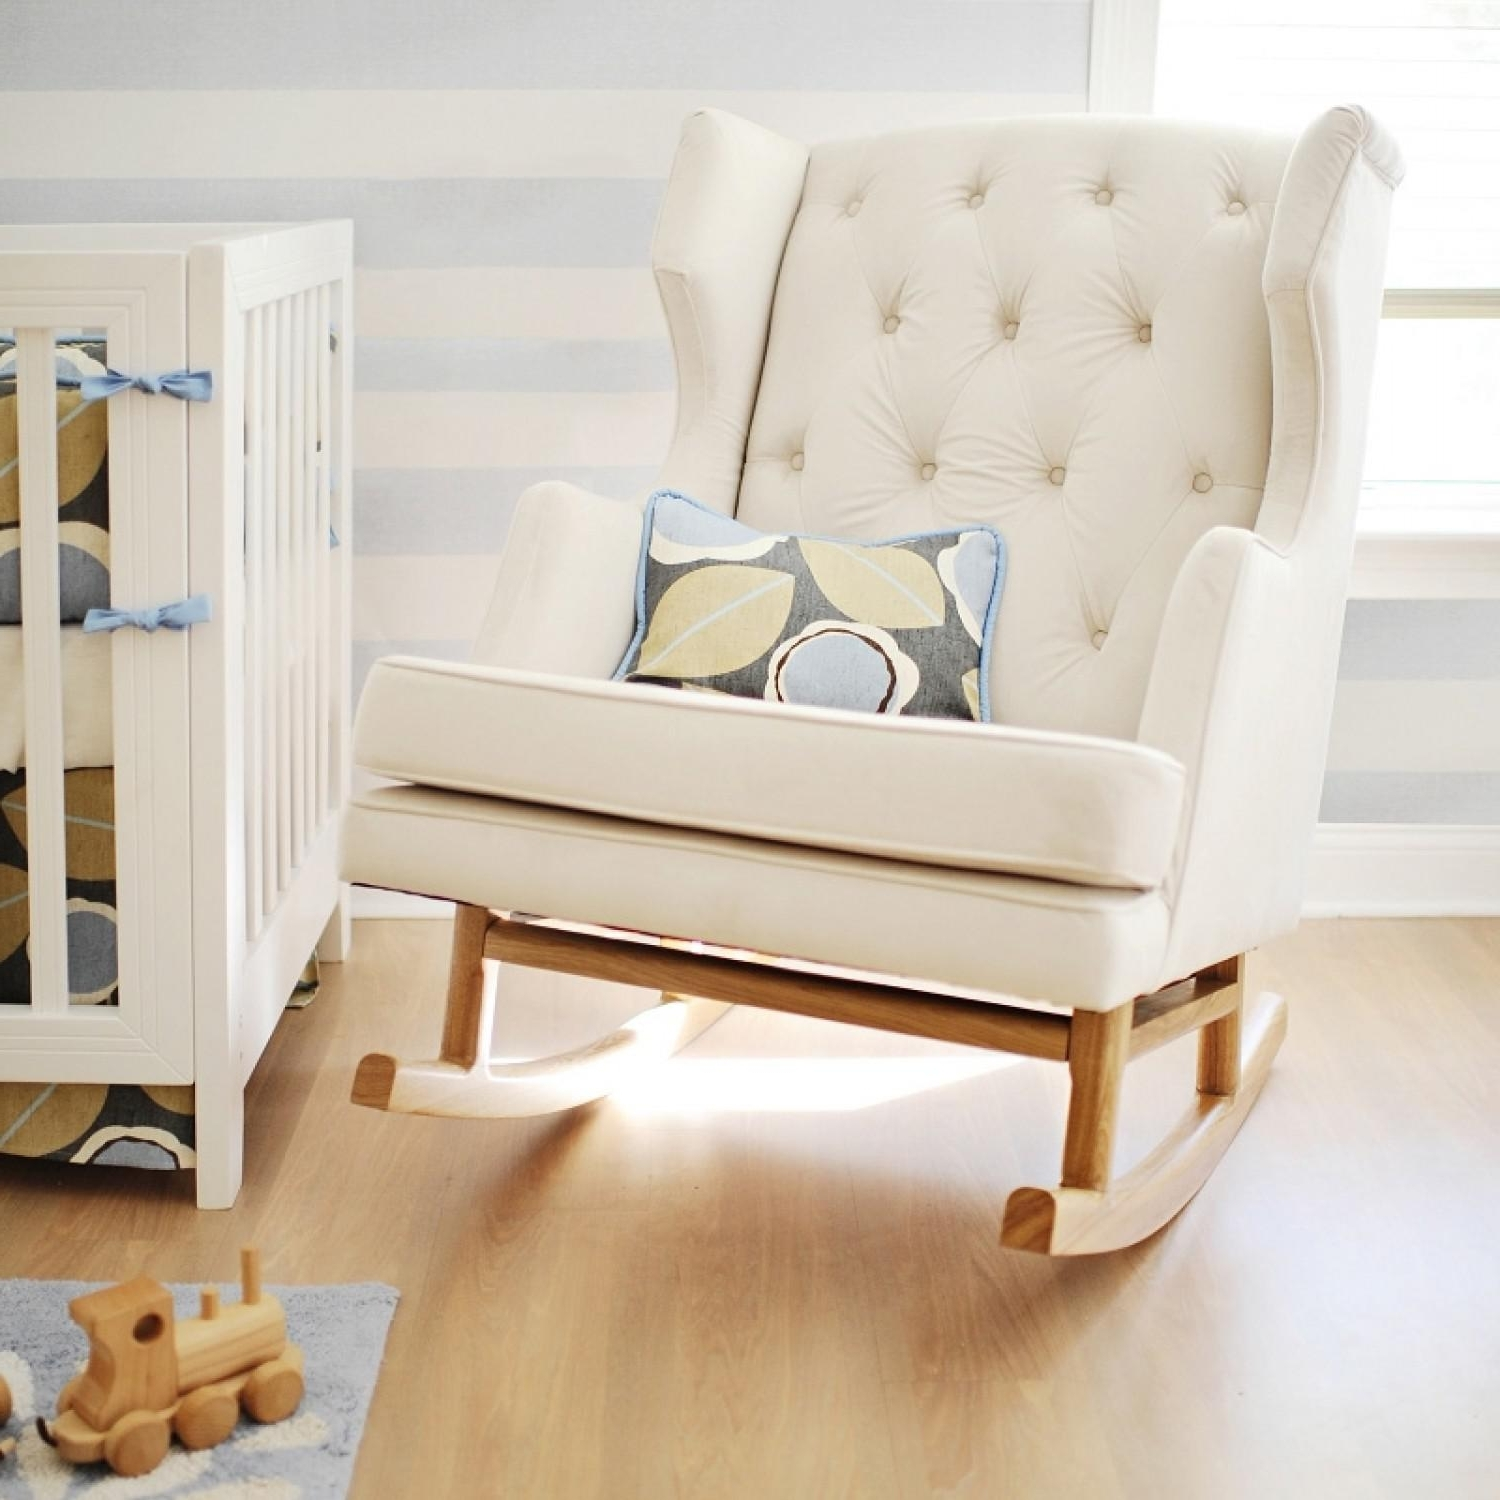 Rocking Chairs With Cushions Pertaining To Most Up To Date Comfy Tufted Rocking Chair Cushions Design : Chair Cushions The (View 8 of 15)